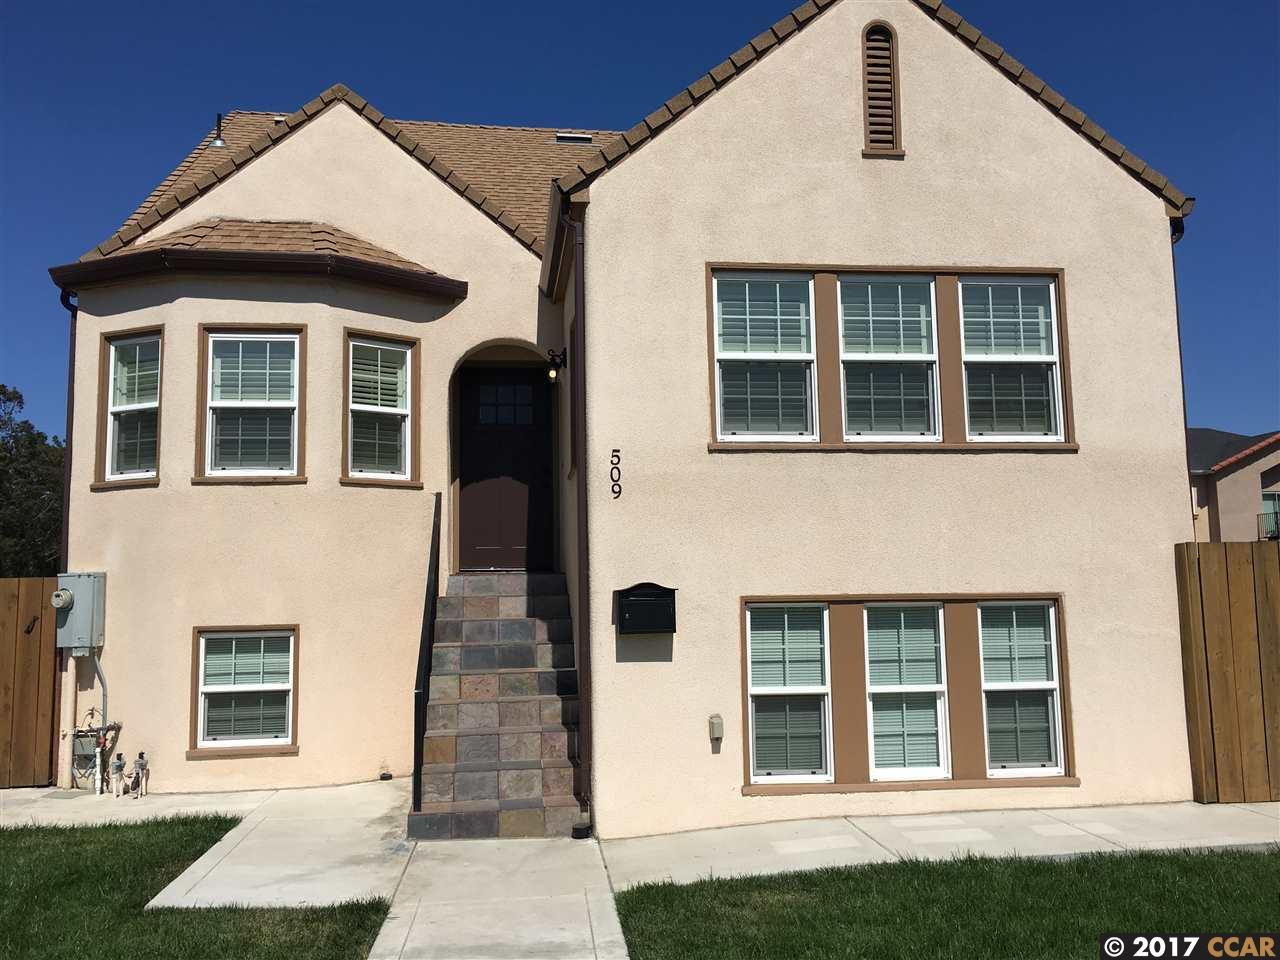 Terreno por un Venta en 507 Parker Avenue Rodeo, California 94572 Estados Unidos